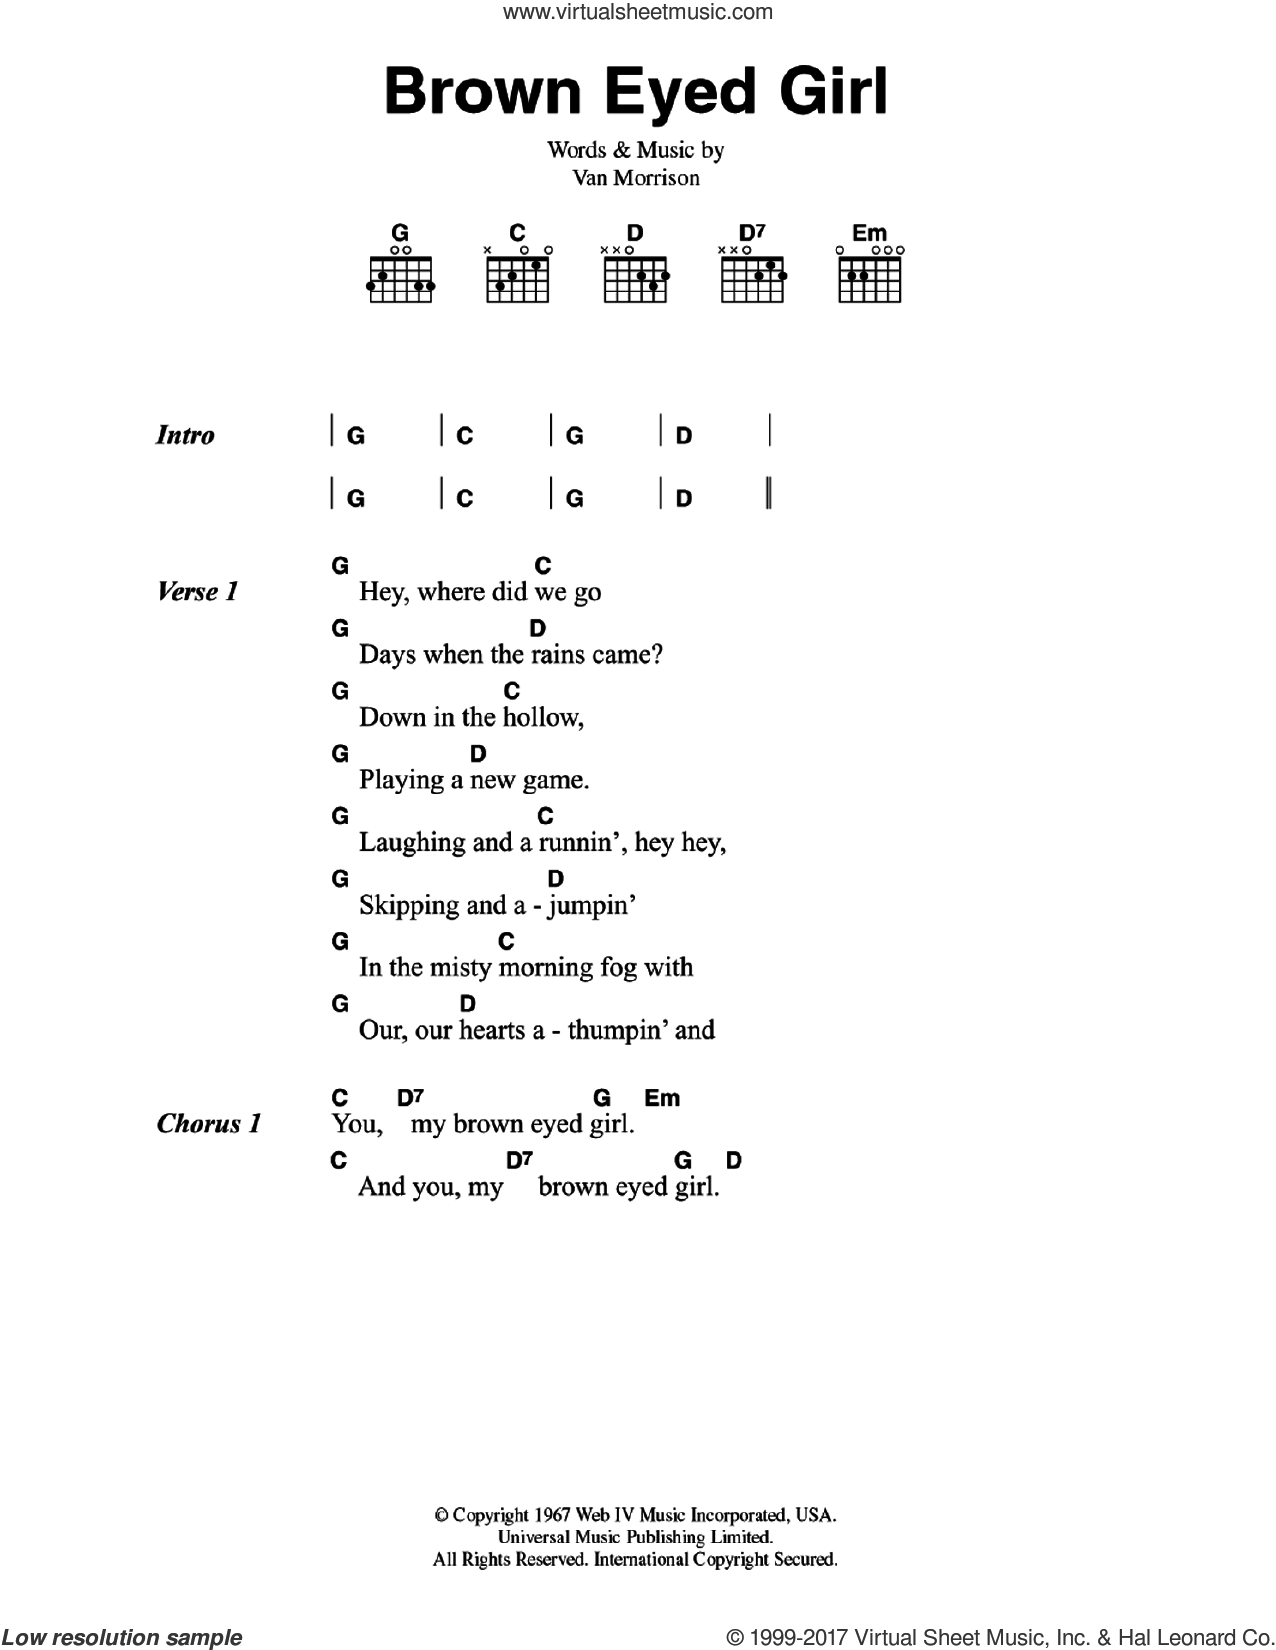 Brown Eyed Girl sheet music for guitar (chords) by Van Morrison, intermediate skill level